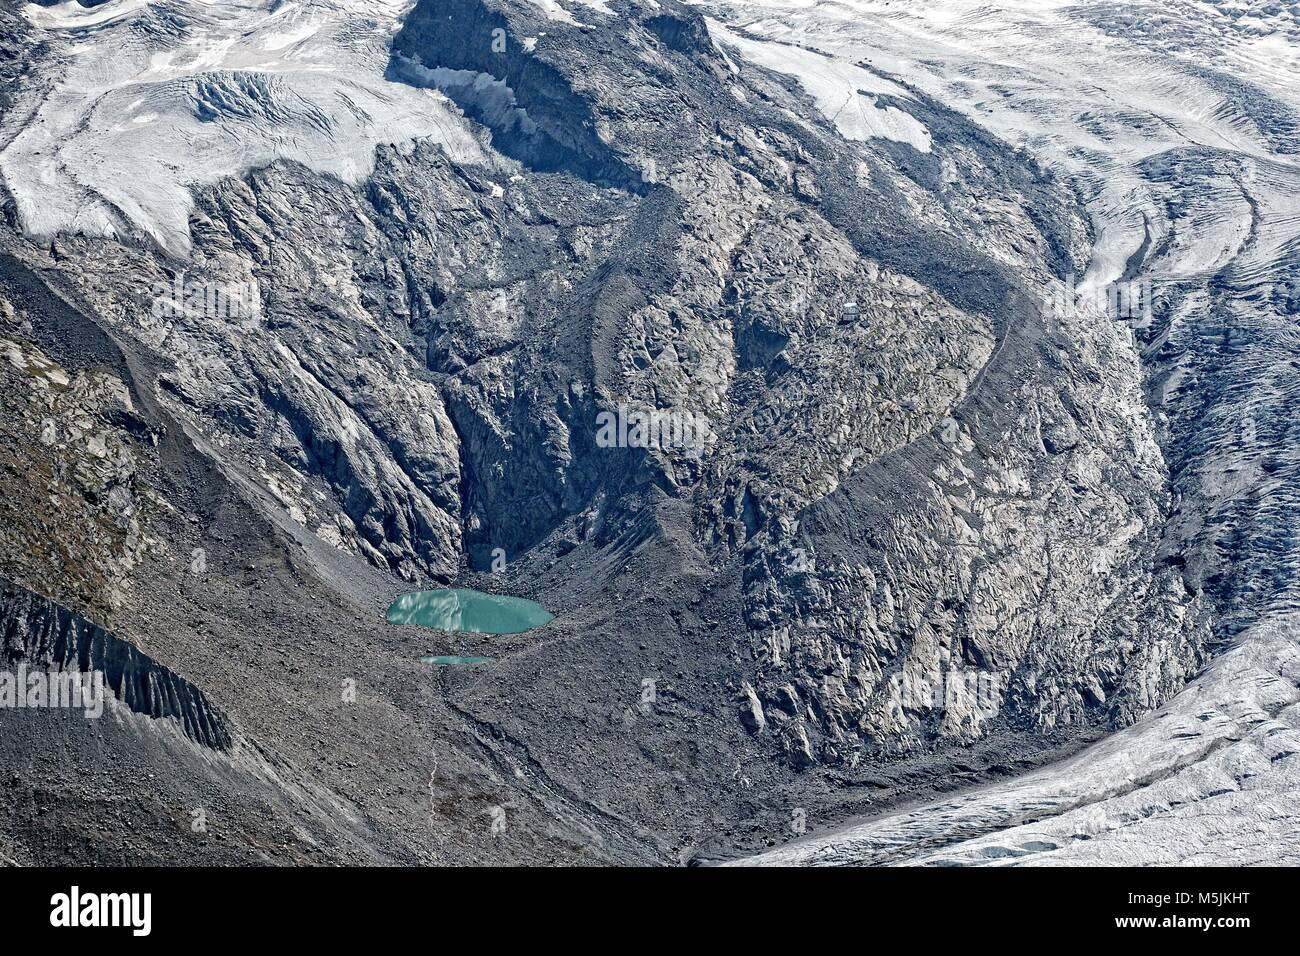 Gorner See lake and rock slopes below Monte Rosa, Gornergrat, Zermatt, Switzerland - Stock Image